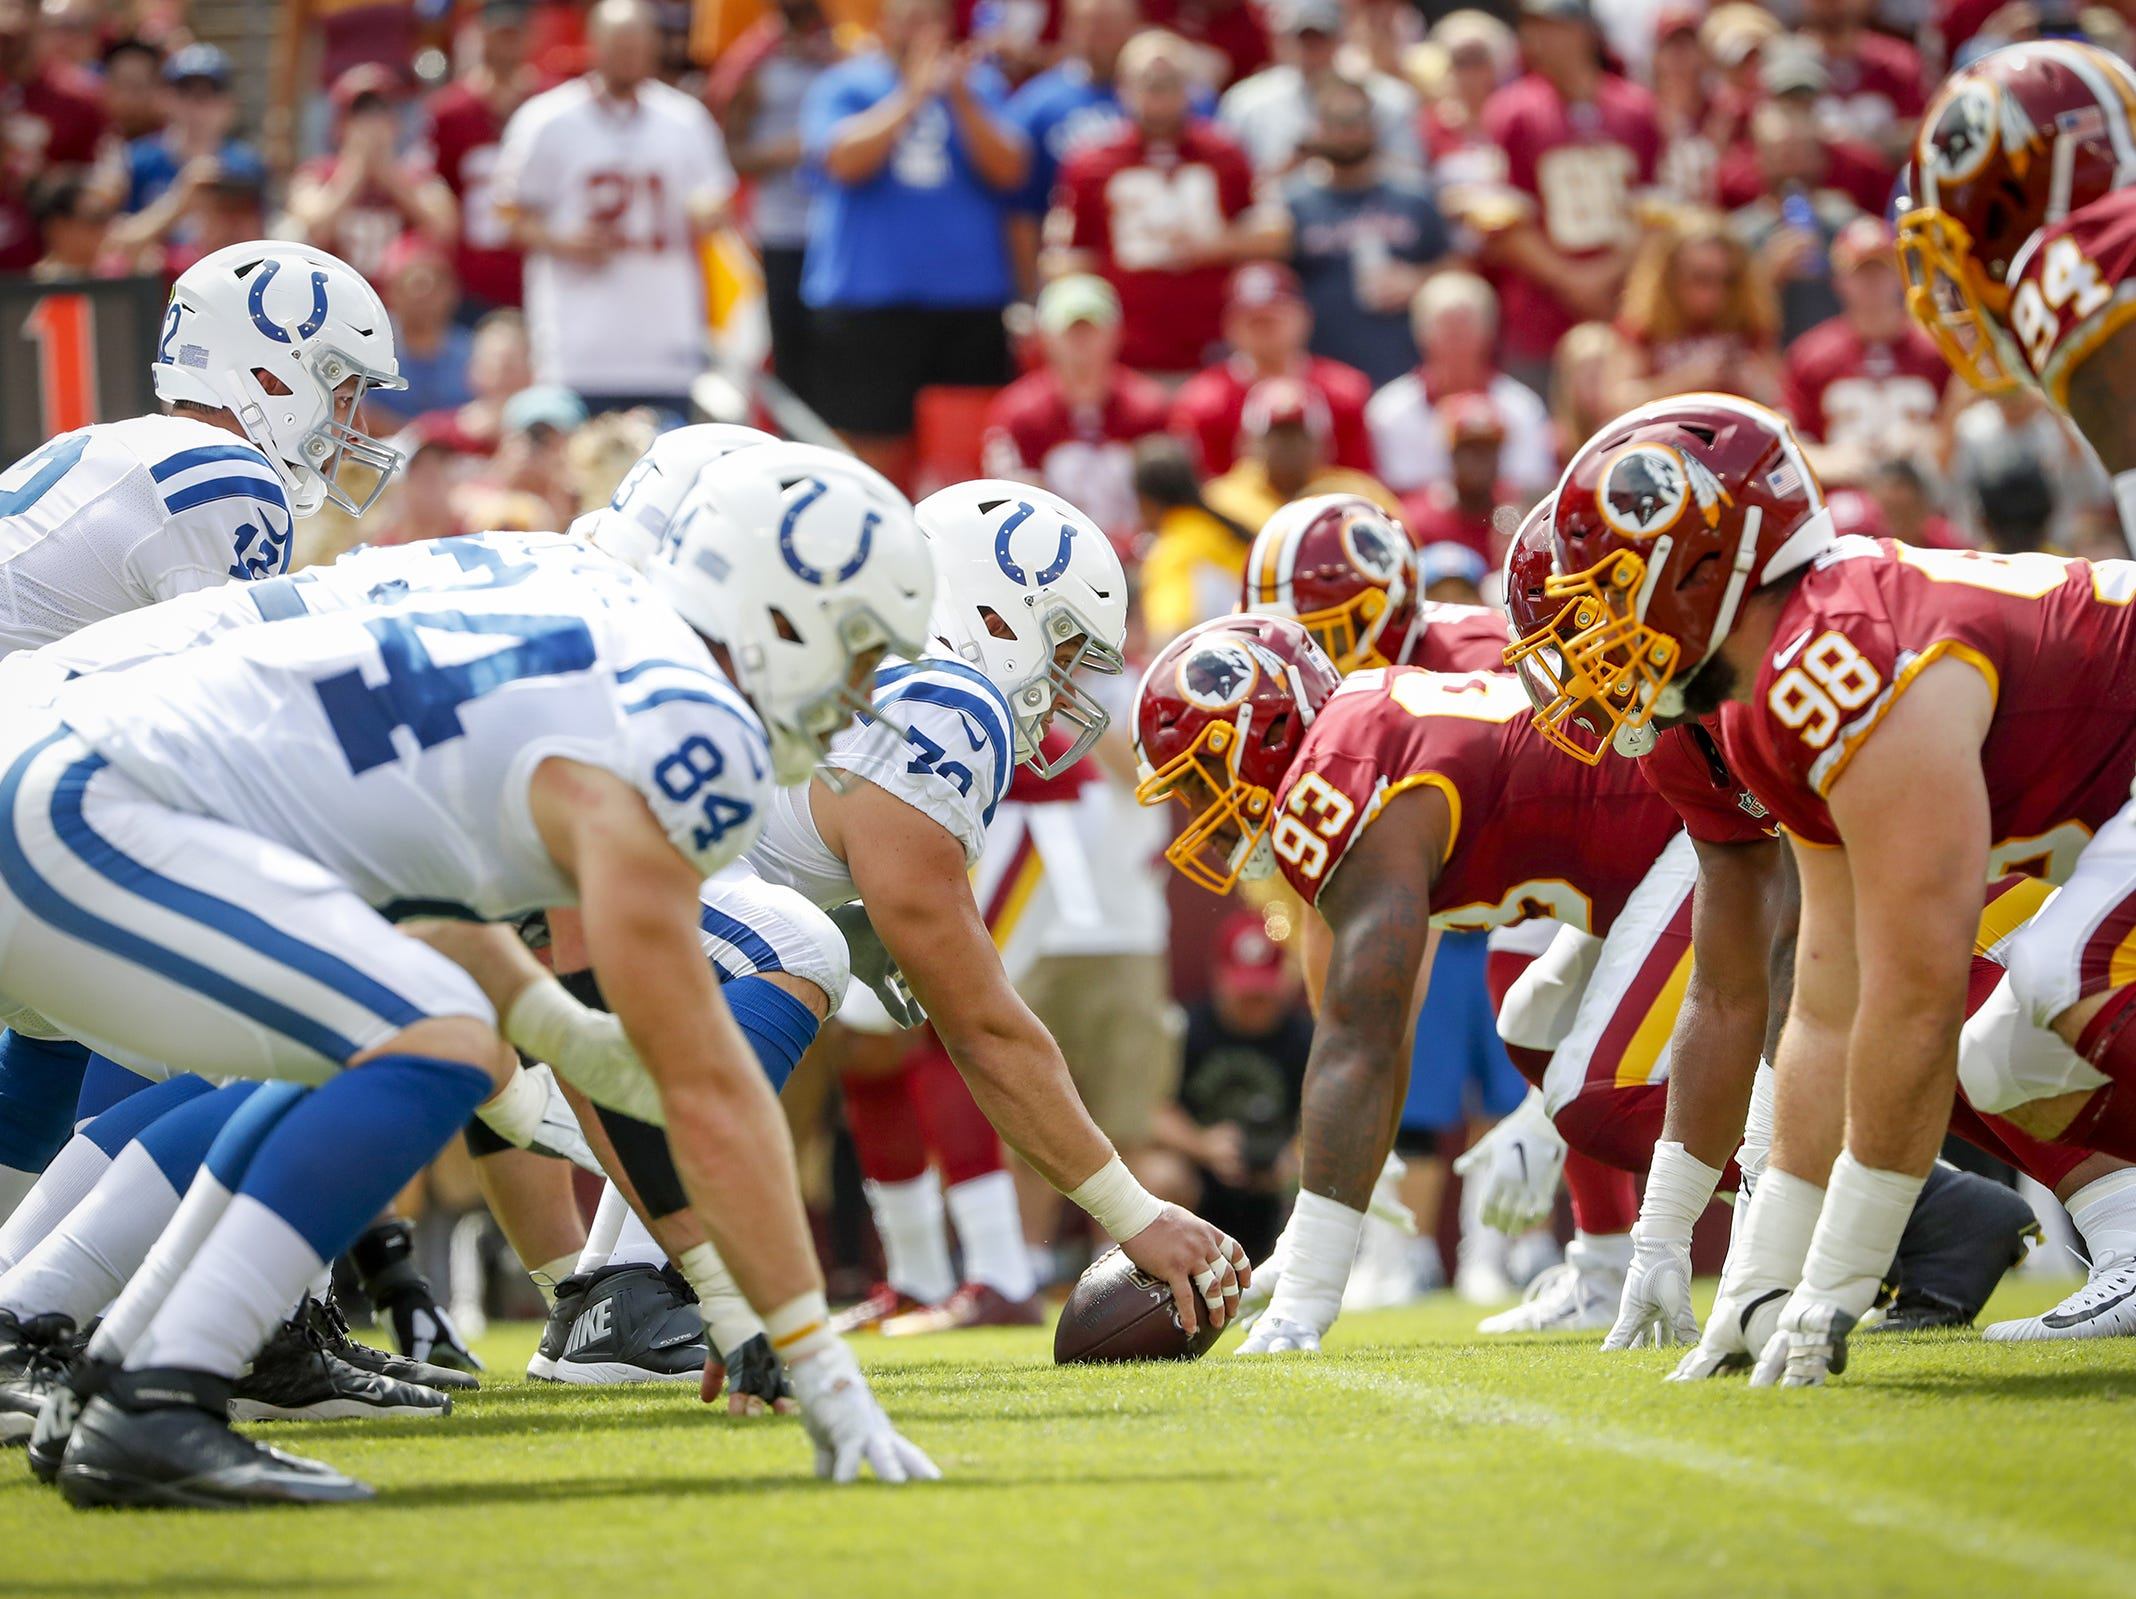 The offensive line faces off against the Redskins during the first half of action. The Indianapolis Colts play the Washington Redskins at FedEx Field in Landover, MD., Sunday, Sept. 16, 2018.